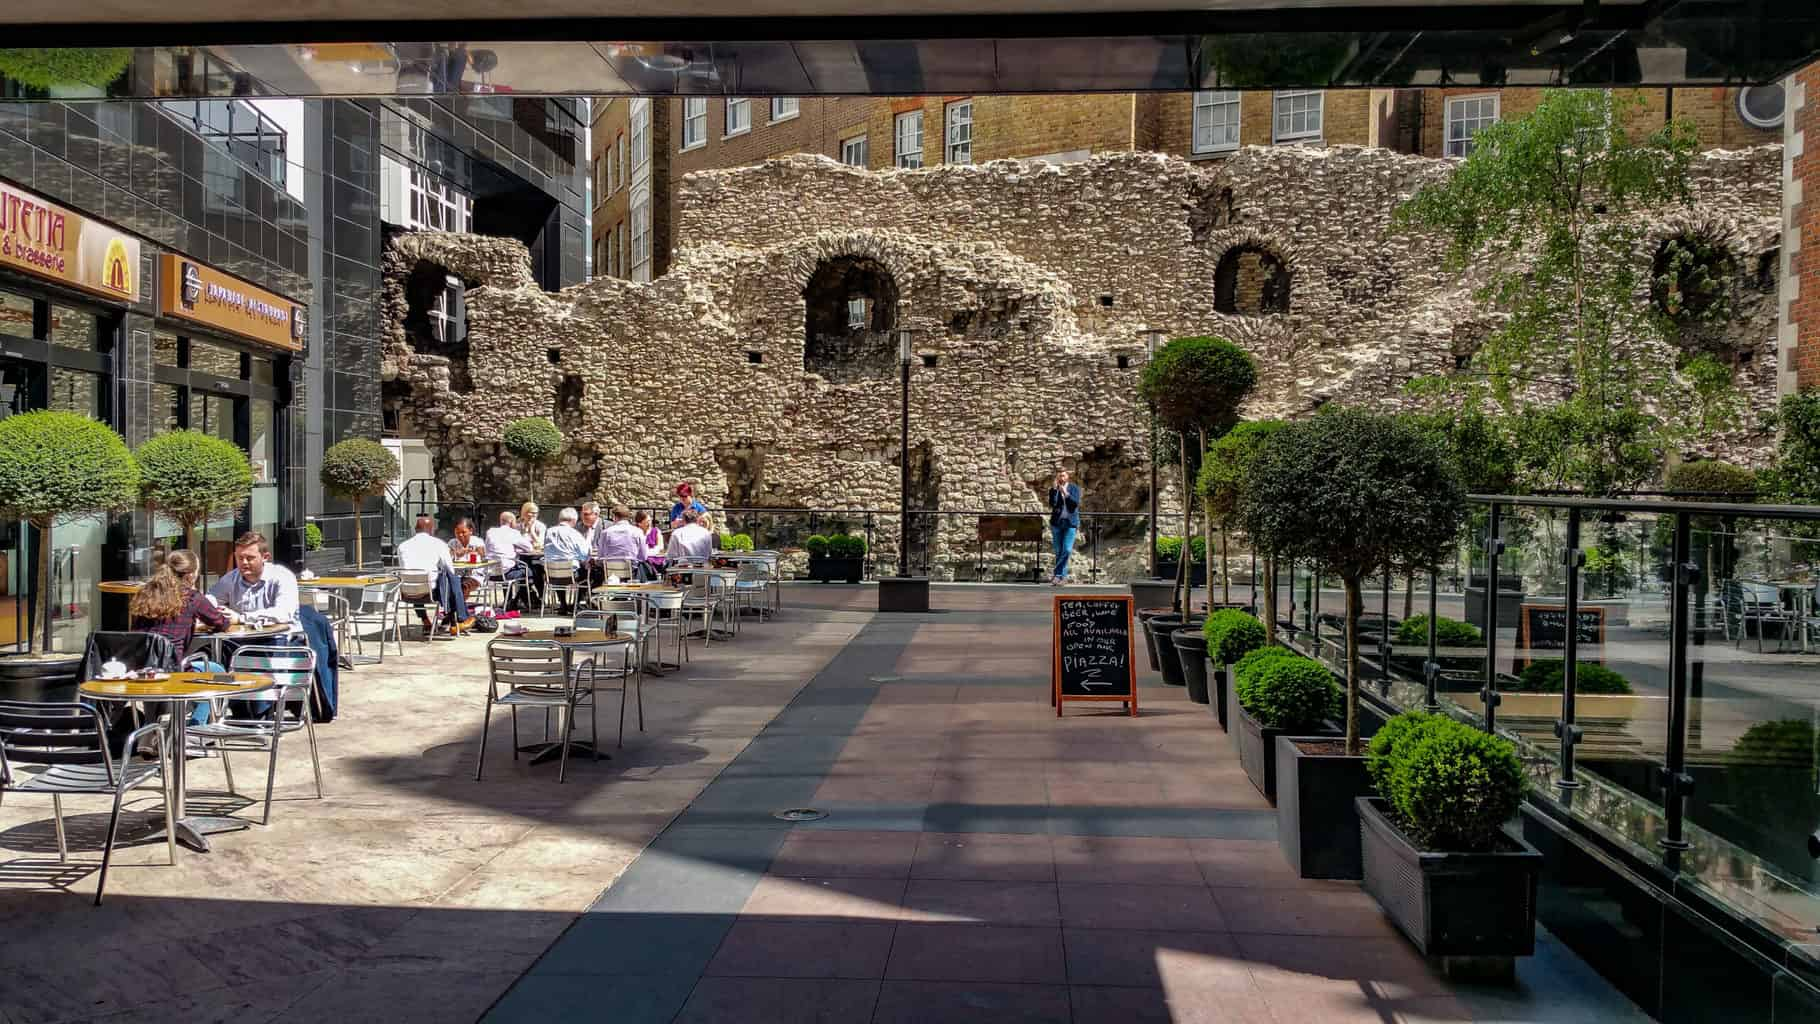 A section of the Roman and Medieval city wall of London at Cooper's Row.